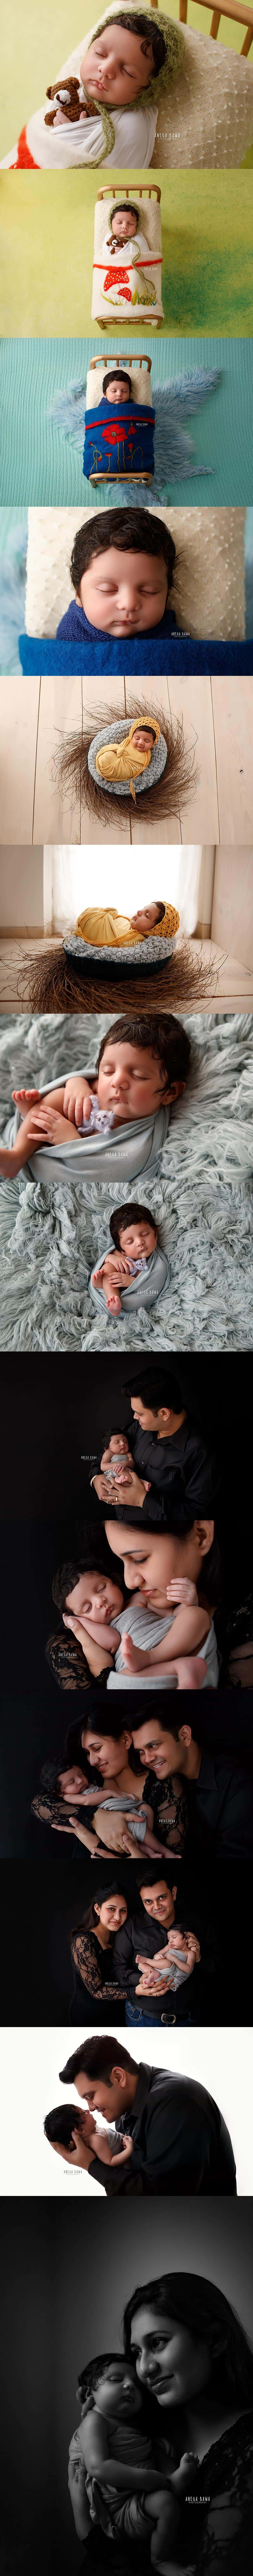 177_top_newborn_photographer_in_delhi_gurgaon_photo_of_30_days_old_boy_anega_bawa_photography